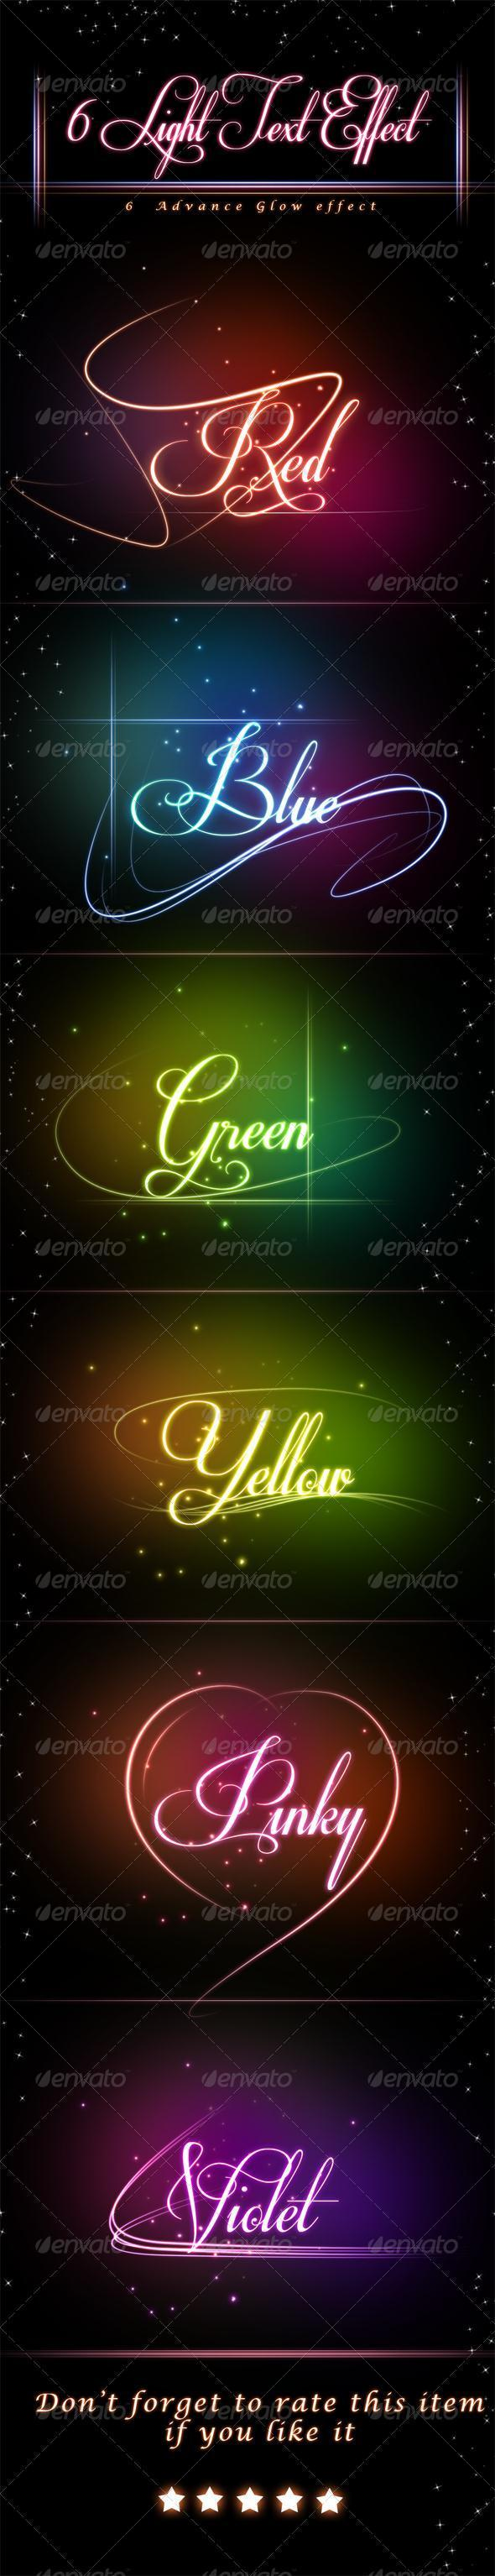 Glowing Light Photoshop Text Styles